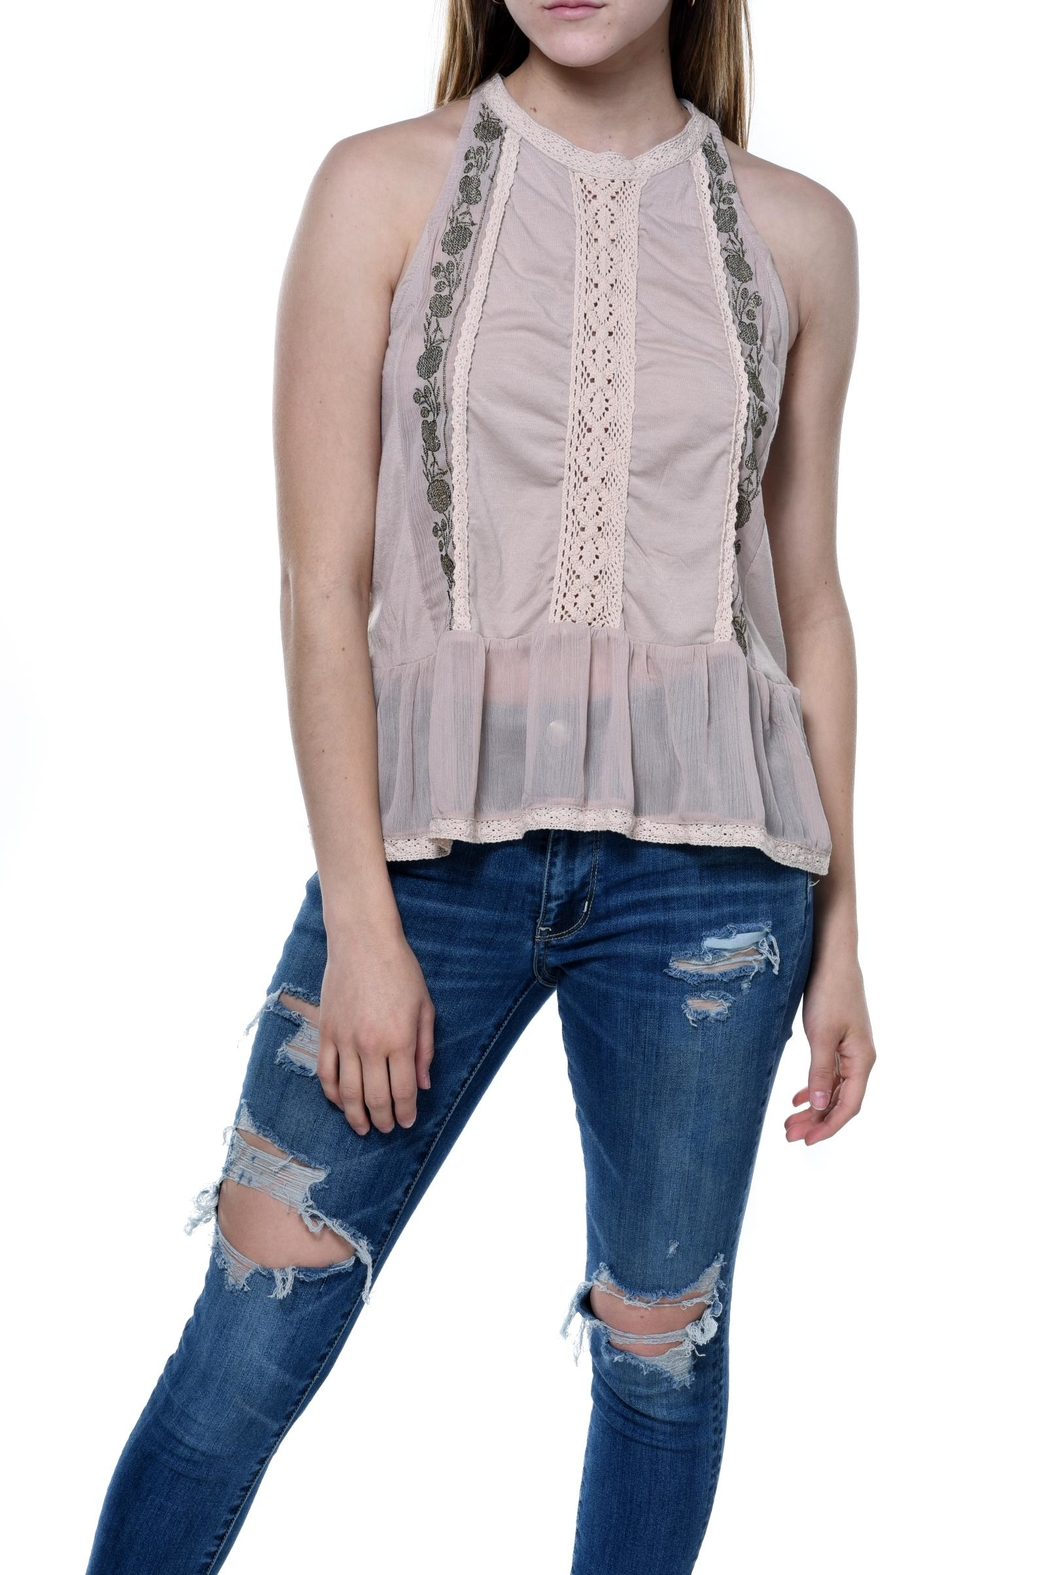 Bishop + Young Daniela Embroidered Sleeveless Blouse - Main Image